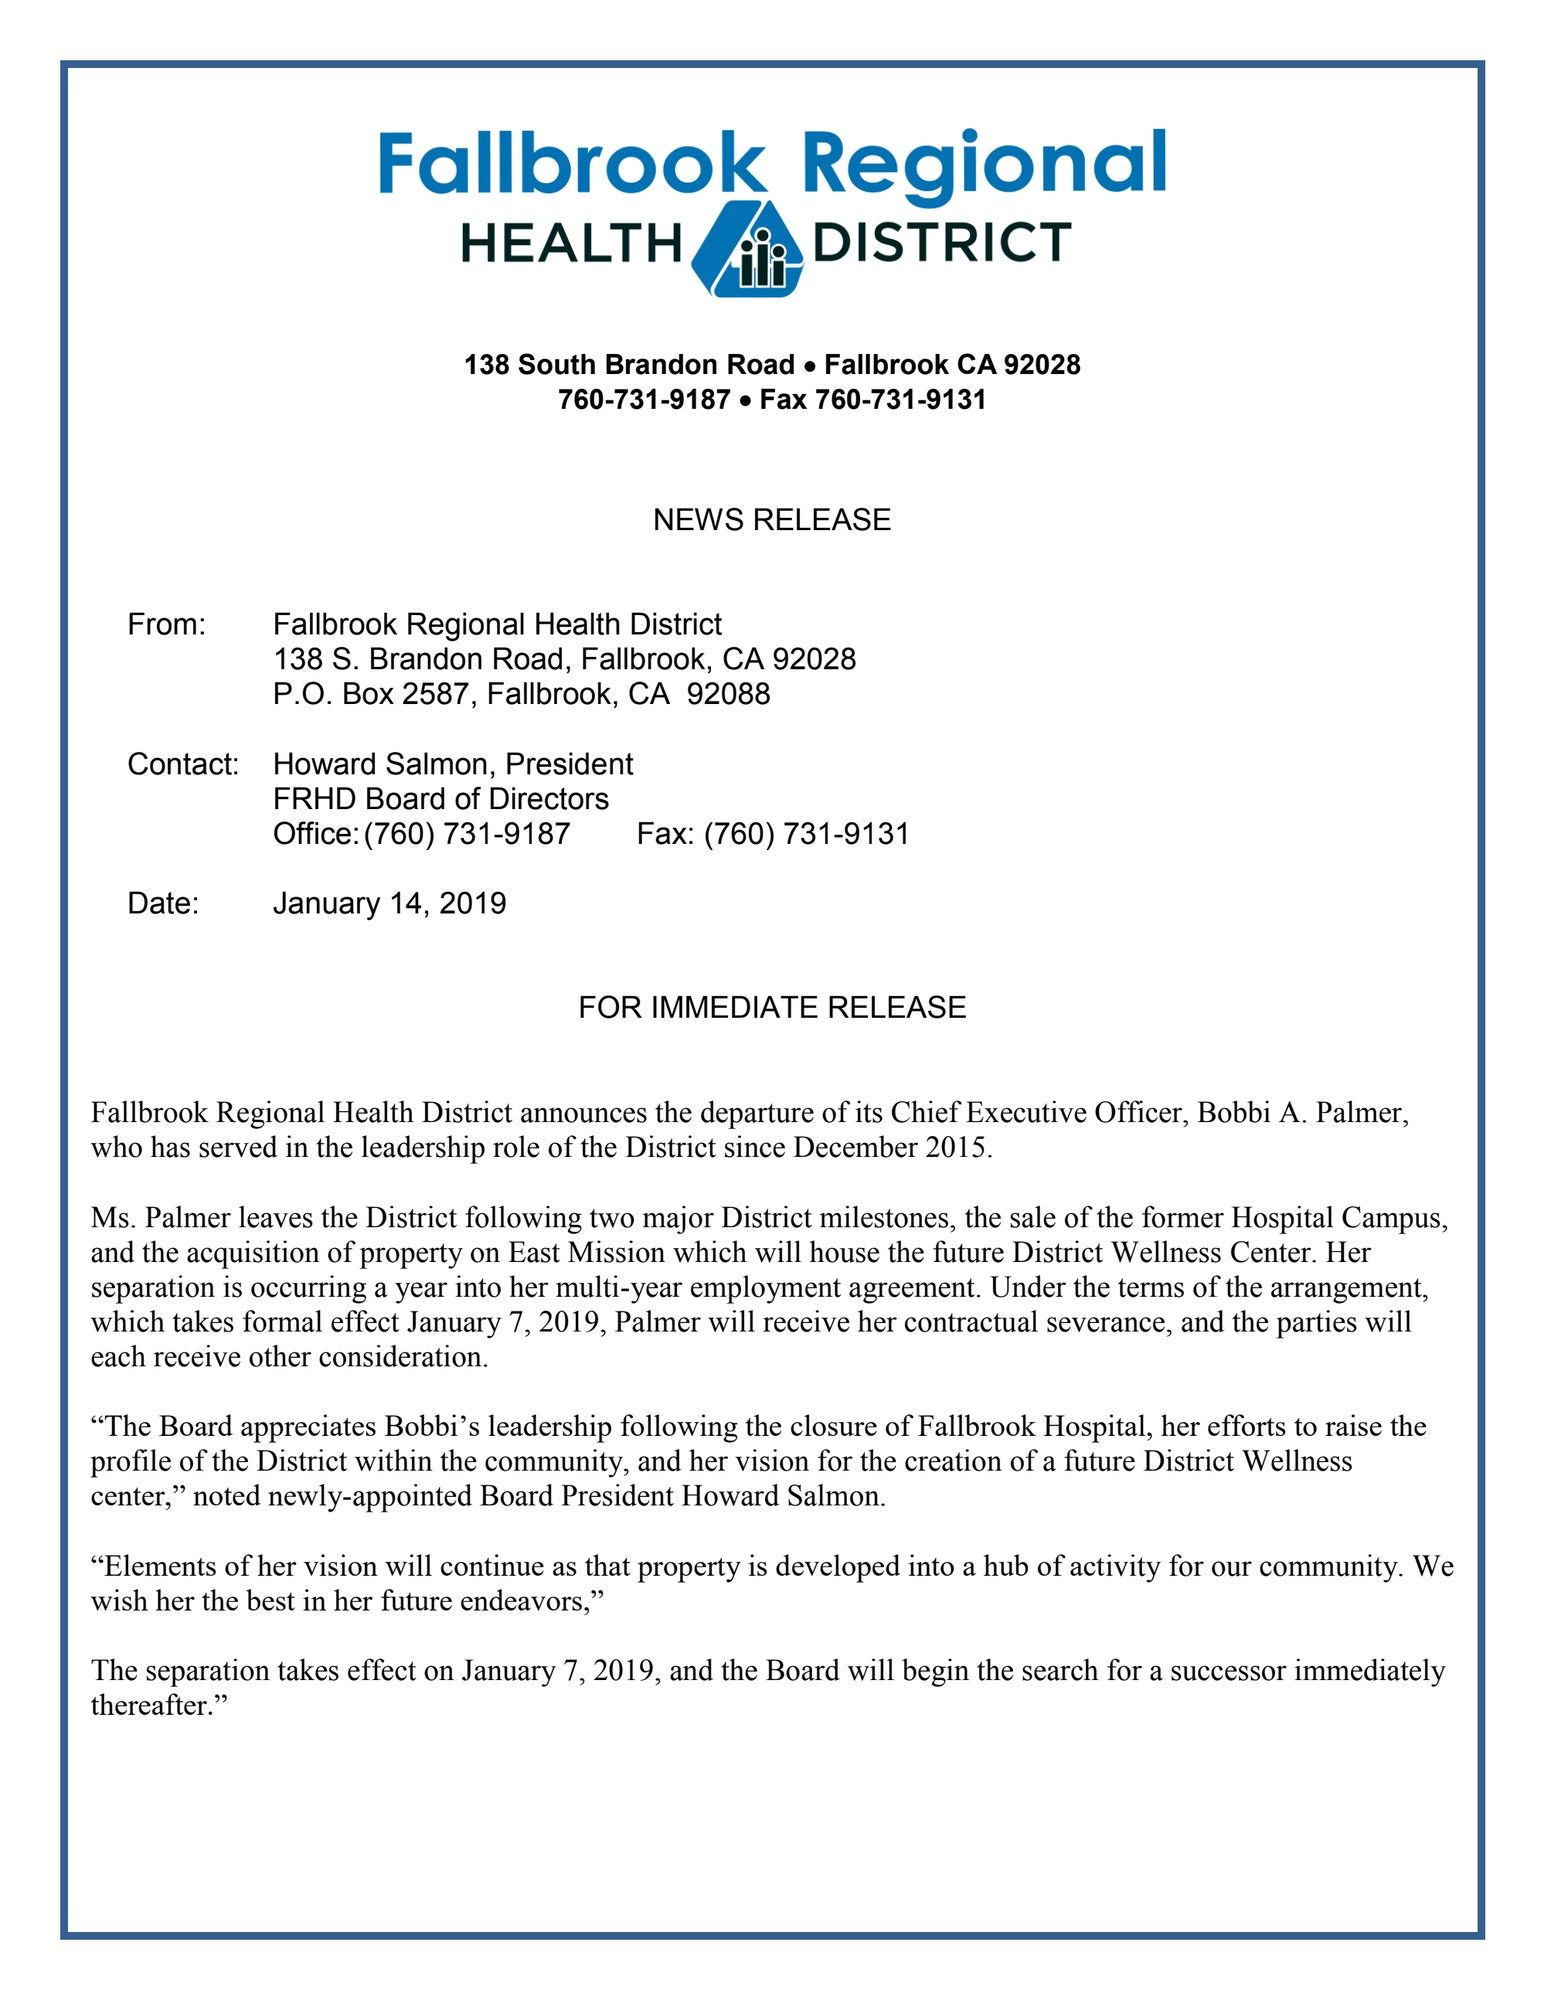 "FOR IMMEDIATE RELEASE   Fallbrook Regional Health District announces the departure of its Chief Executive Officer, Bobbi A. Palmer, who has served in the leadership role of the District since December 2015.  Ms. Palmer leaves the District following two major District milestones, the sale of the former Hospital Campus, and the acquisition of property on East Mission which will house the future District Wellness Center. Her separation is occurring a year into her multi-year employment agreement. Under the terms of the arrangement, which takes formal effect January 7, 2019, Palmer will receive her contractual severance, and the parties will each receive other consideration.  ""The Board appreciates Bobbi's leadership following the closure of Fallbrook Hospital, her efforts to raise the profile of the District within the community, and her vision for the creation of a future District Wellness center,"" noted newly-appointed Board President Howard Salmon.   ""Elements of her vision will continue as that property is developed into a hub of activity for our community. We wish her the best in her future endeavors,""  The separation takes effect on January 7, 2019, and the Board will begin the search for a successor immediately thereafter."""